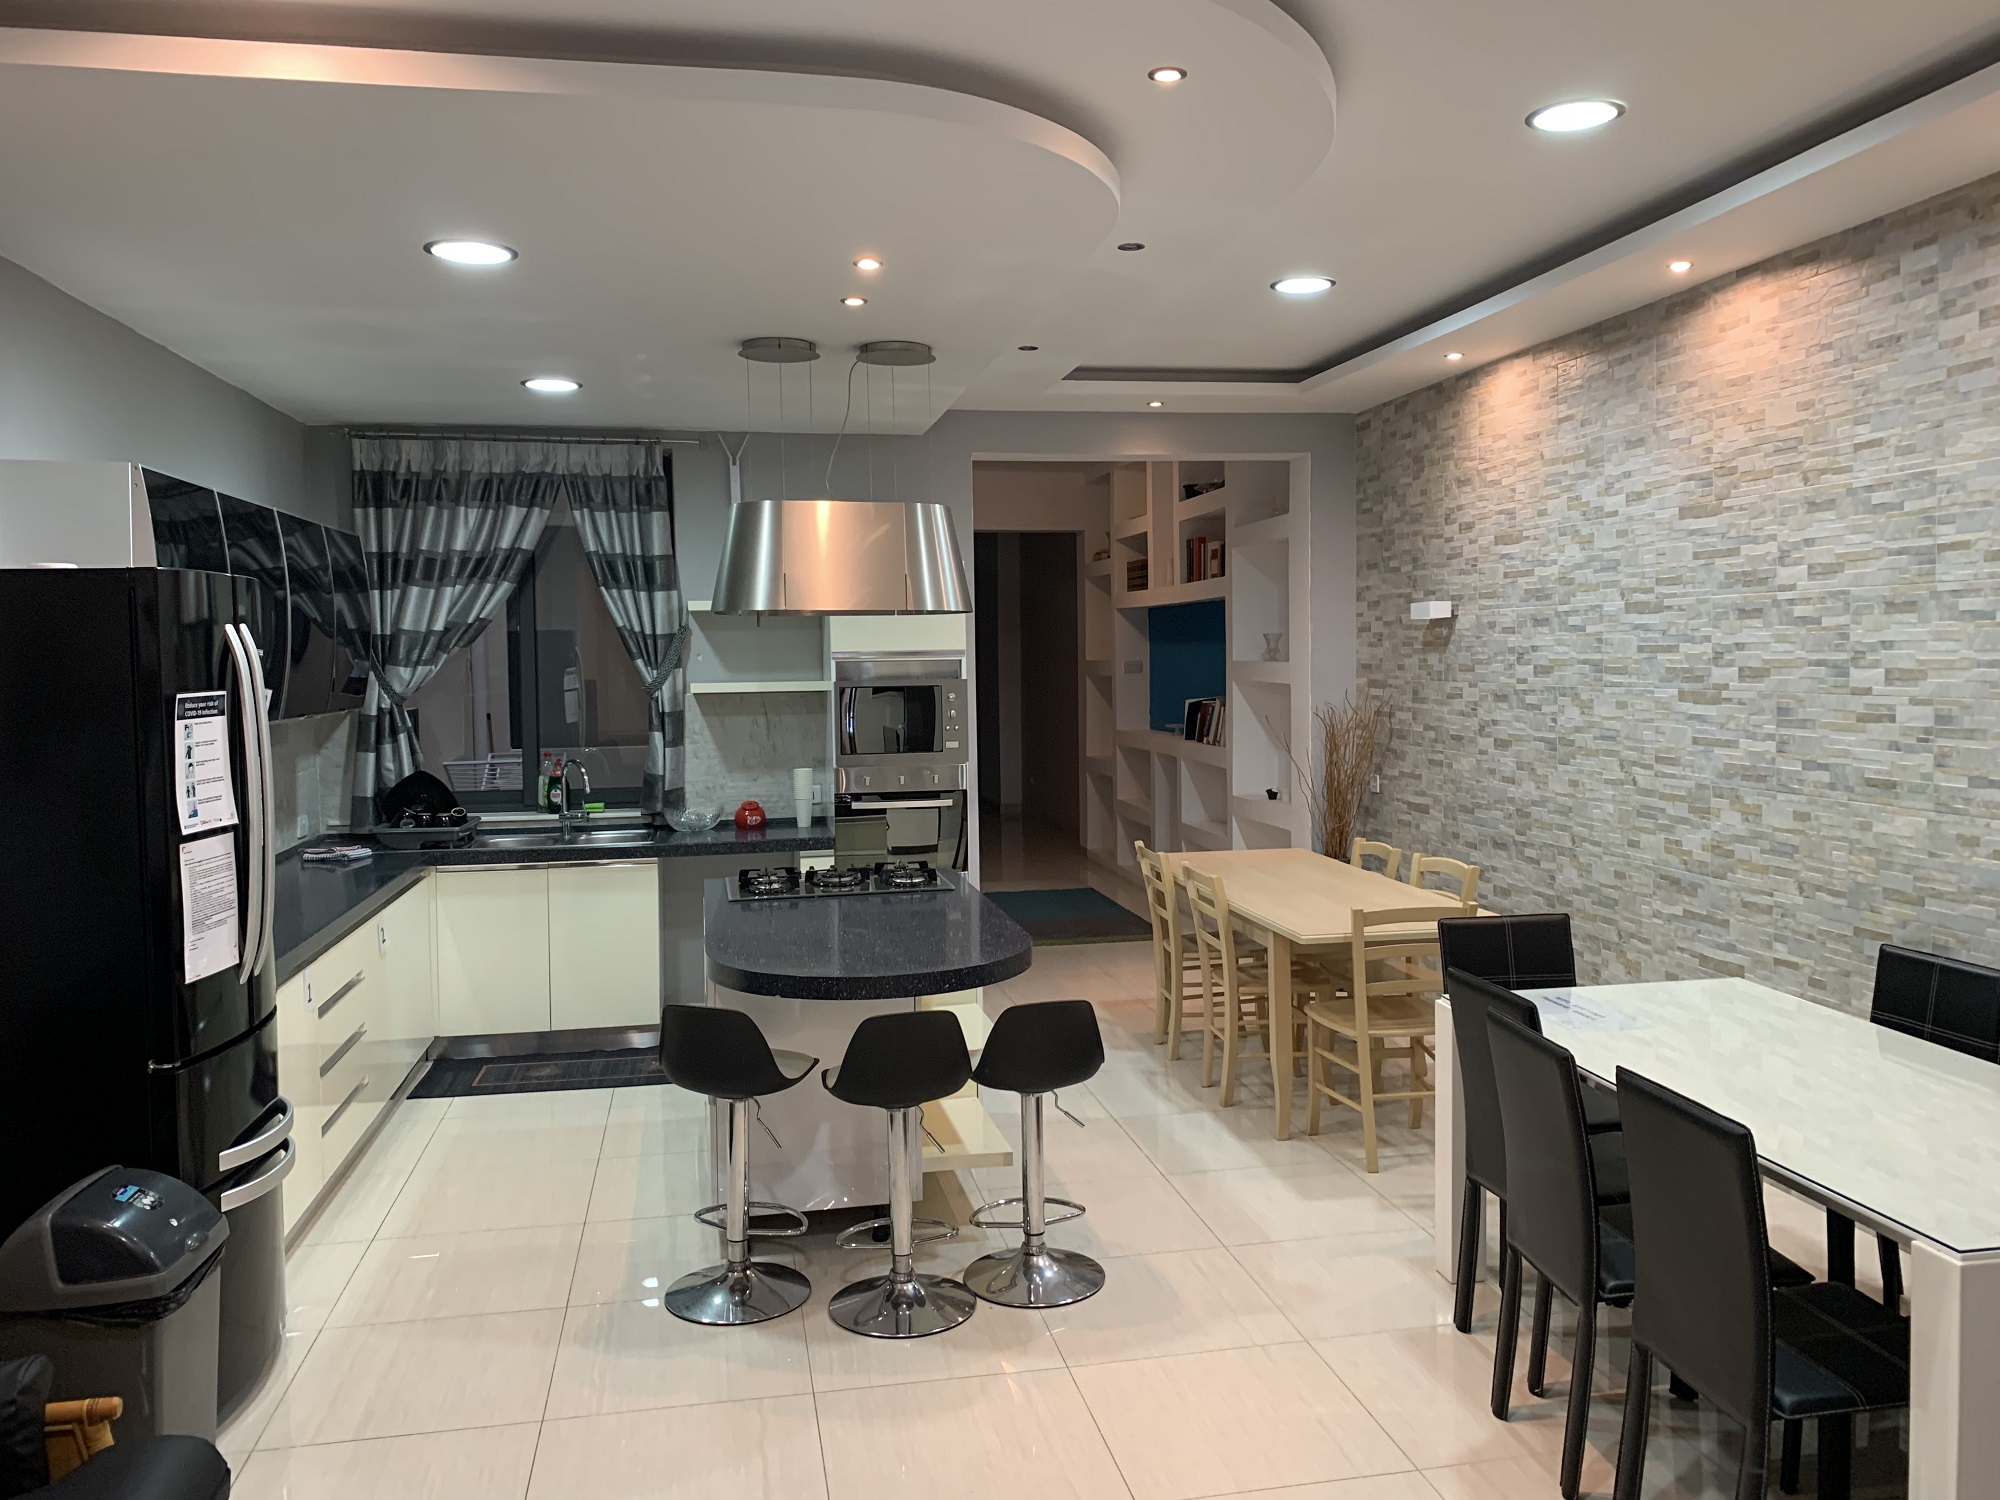 A kitchen at one of our shared student residences in BELS Gozo